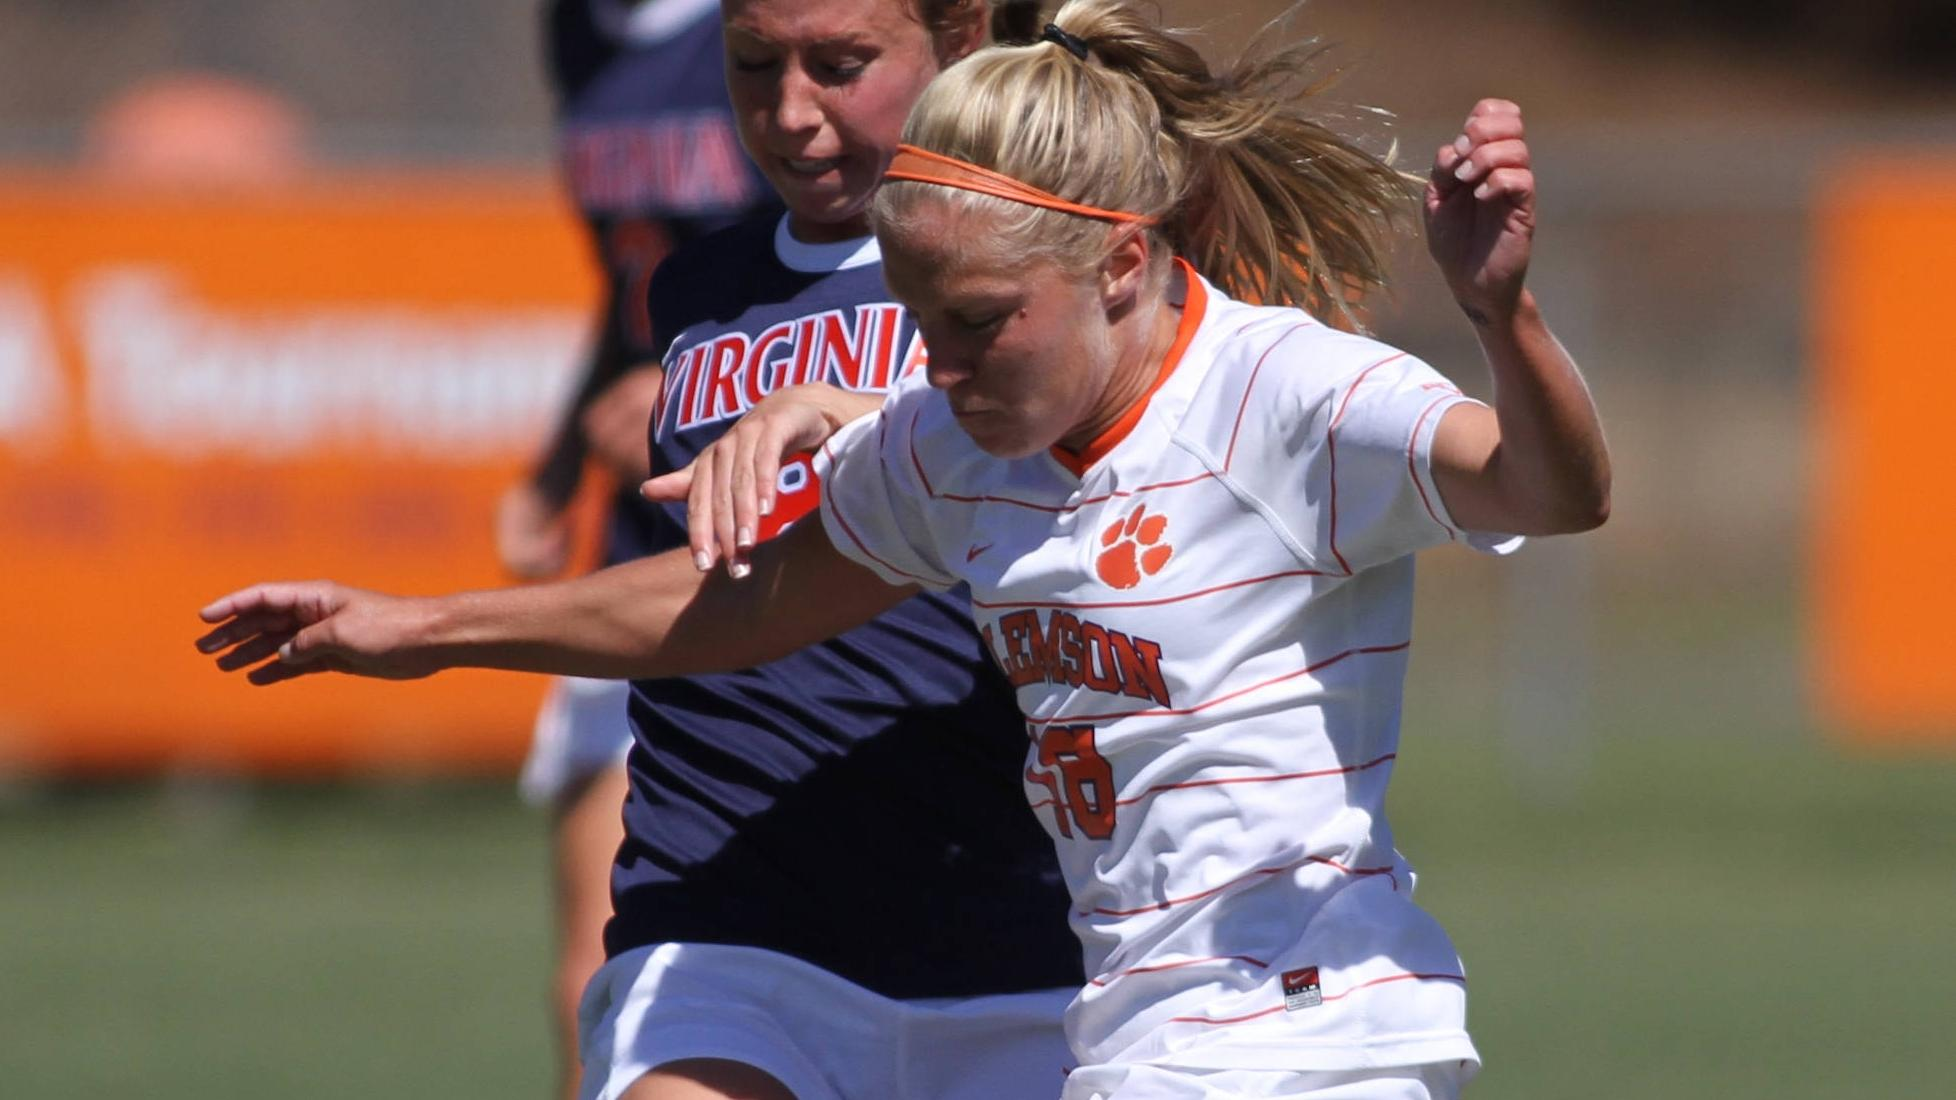 Tigers Fall to #13 Wake Forest on the Road Sunday Afternoon